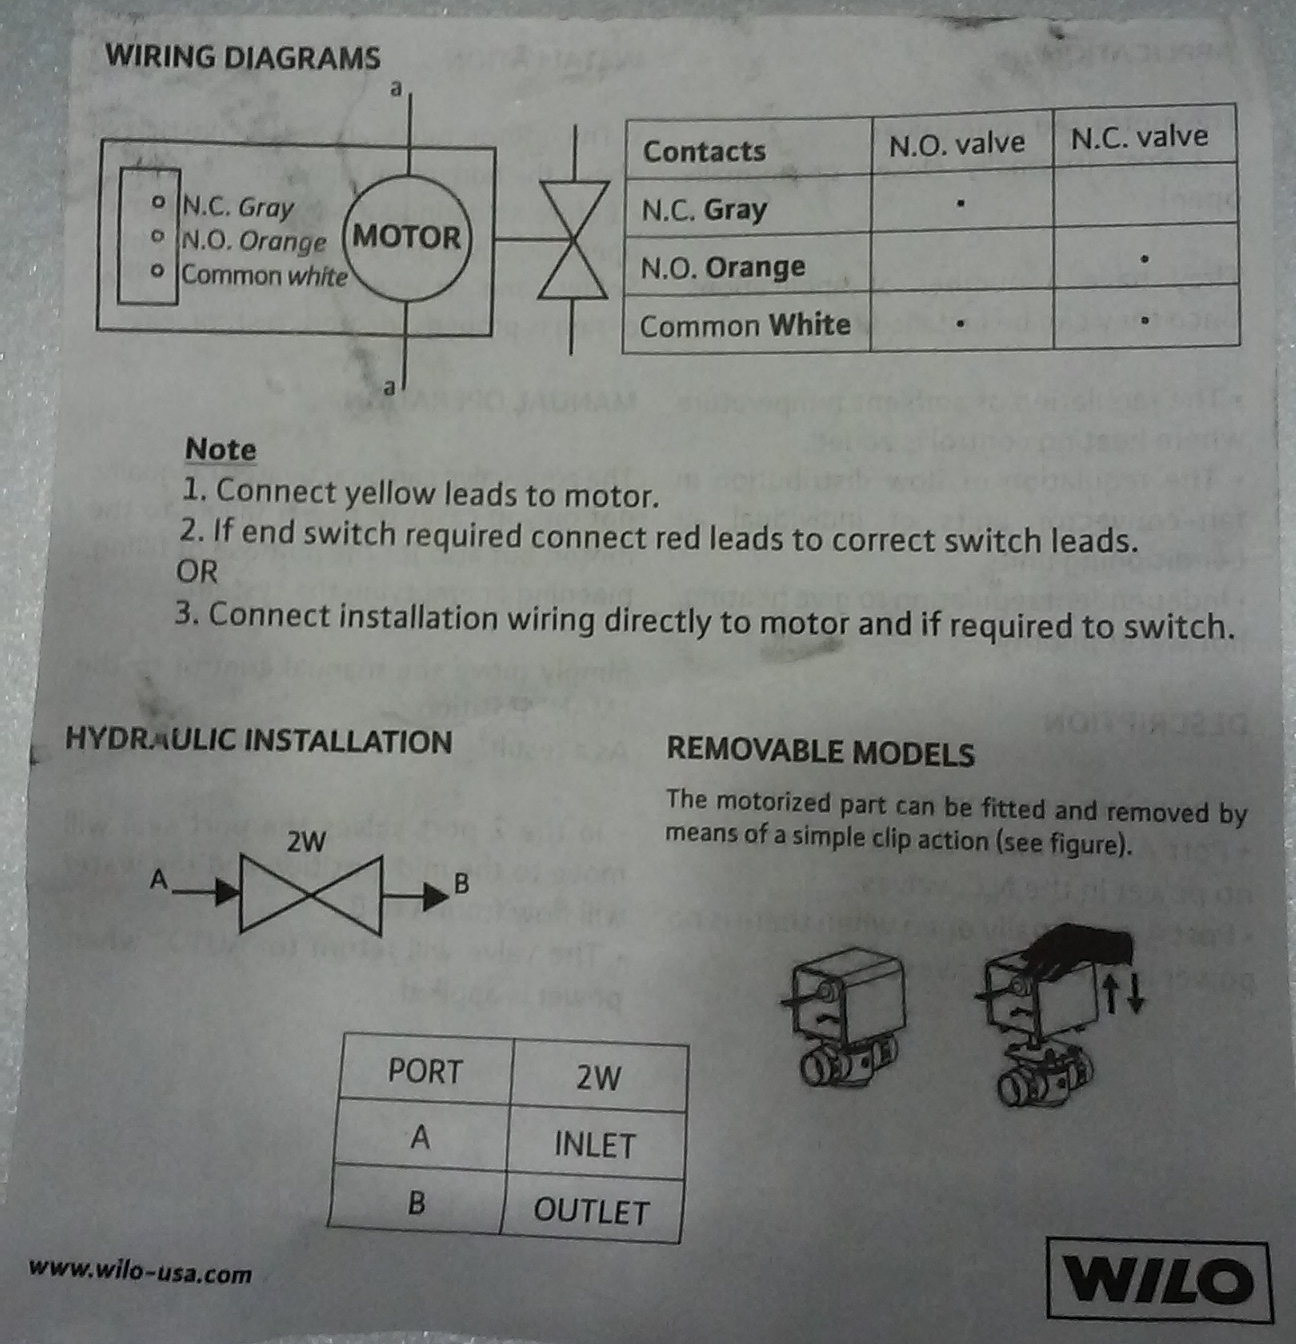 Wilo 3 wire zone vale wiring help — Heating Help: The Wall